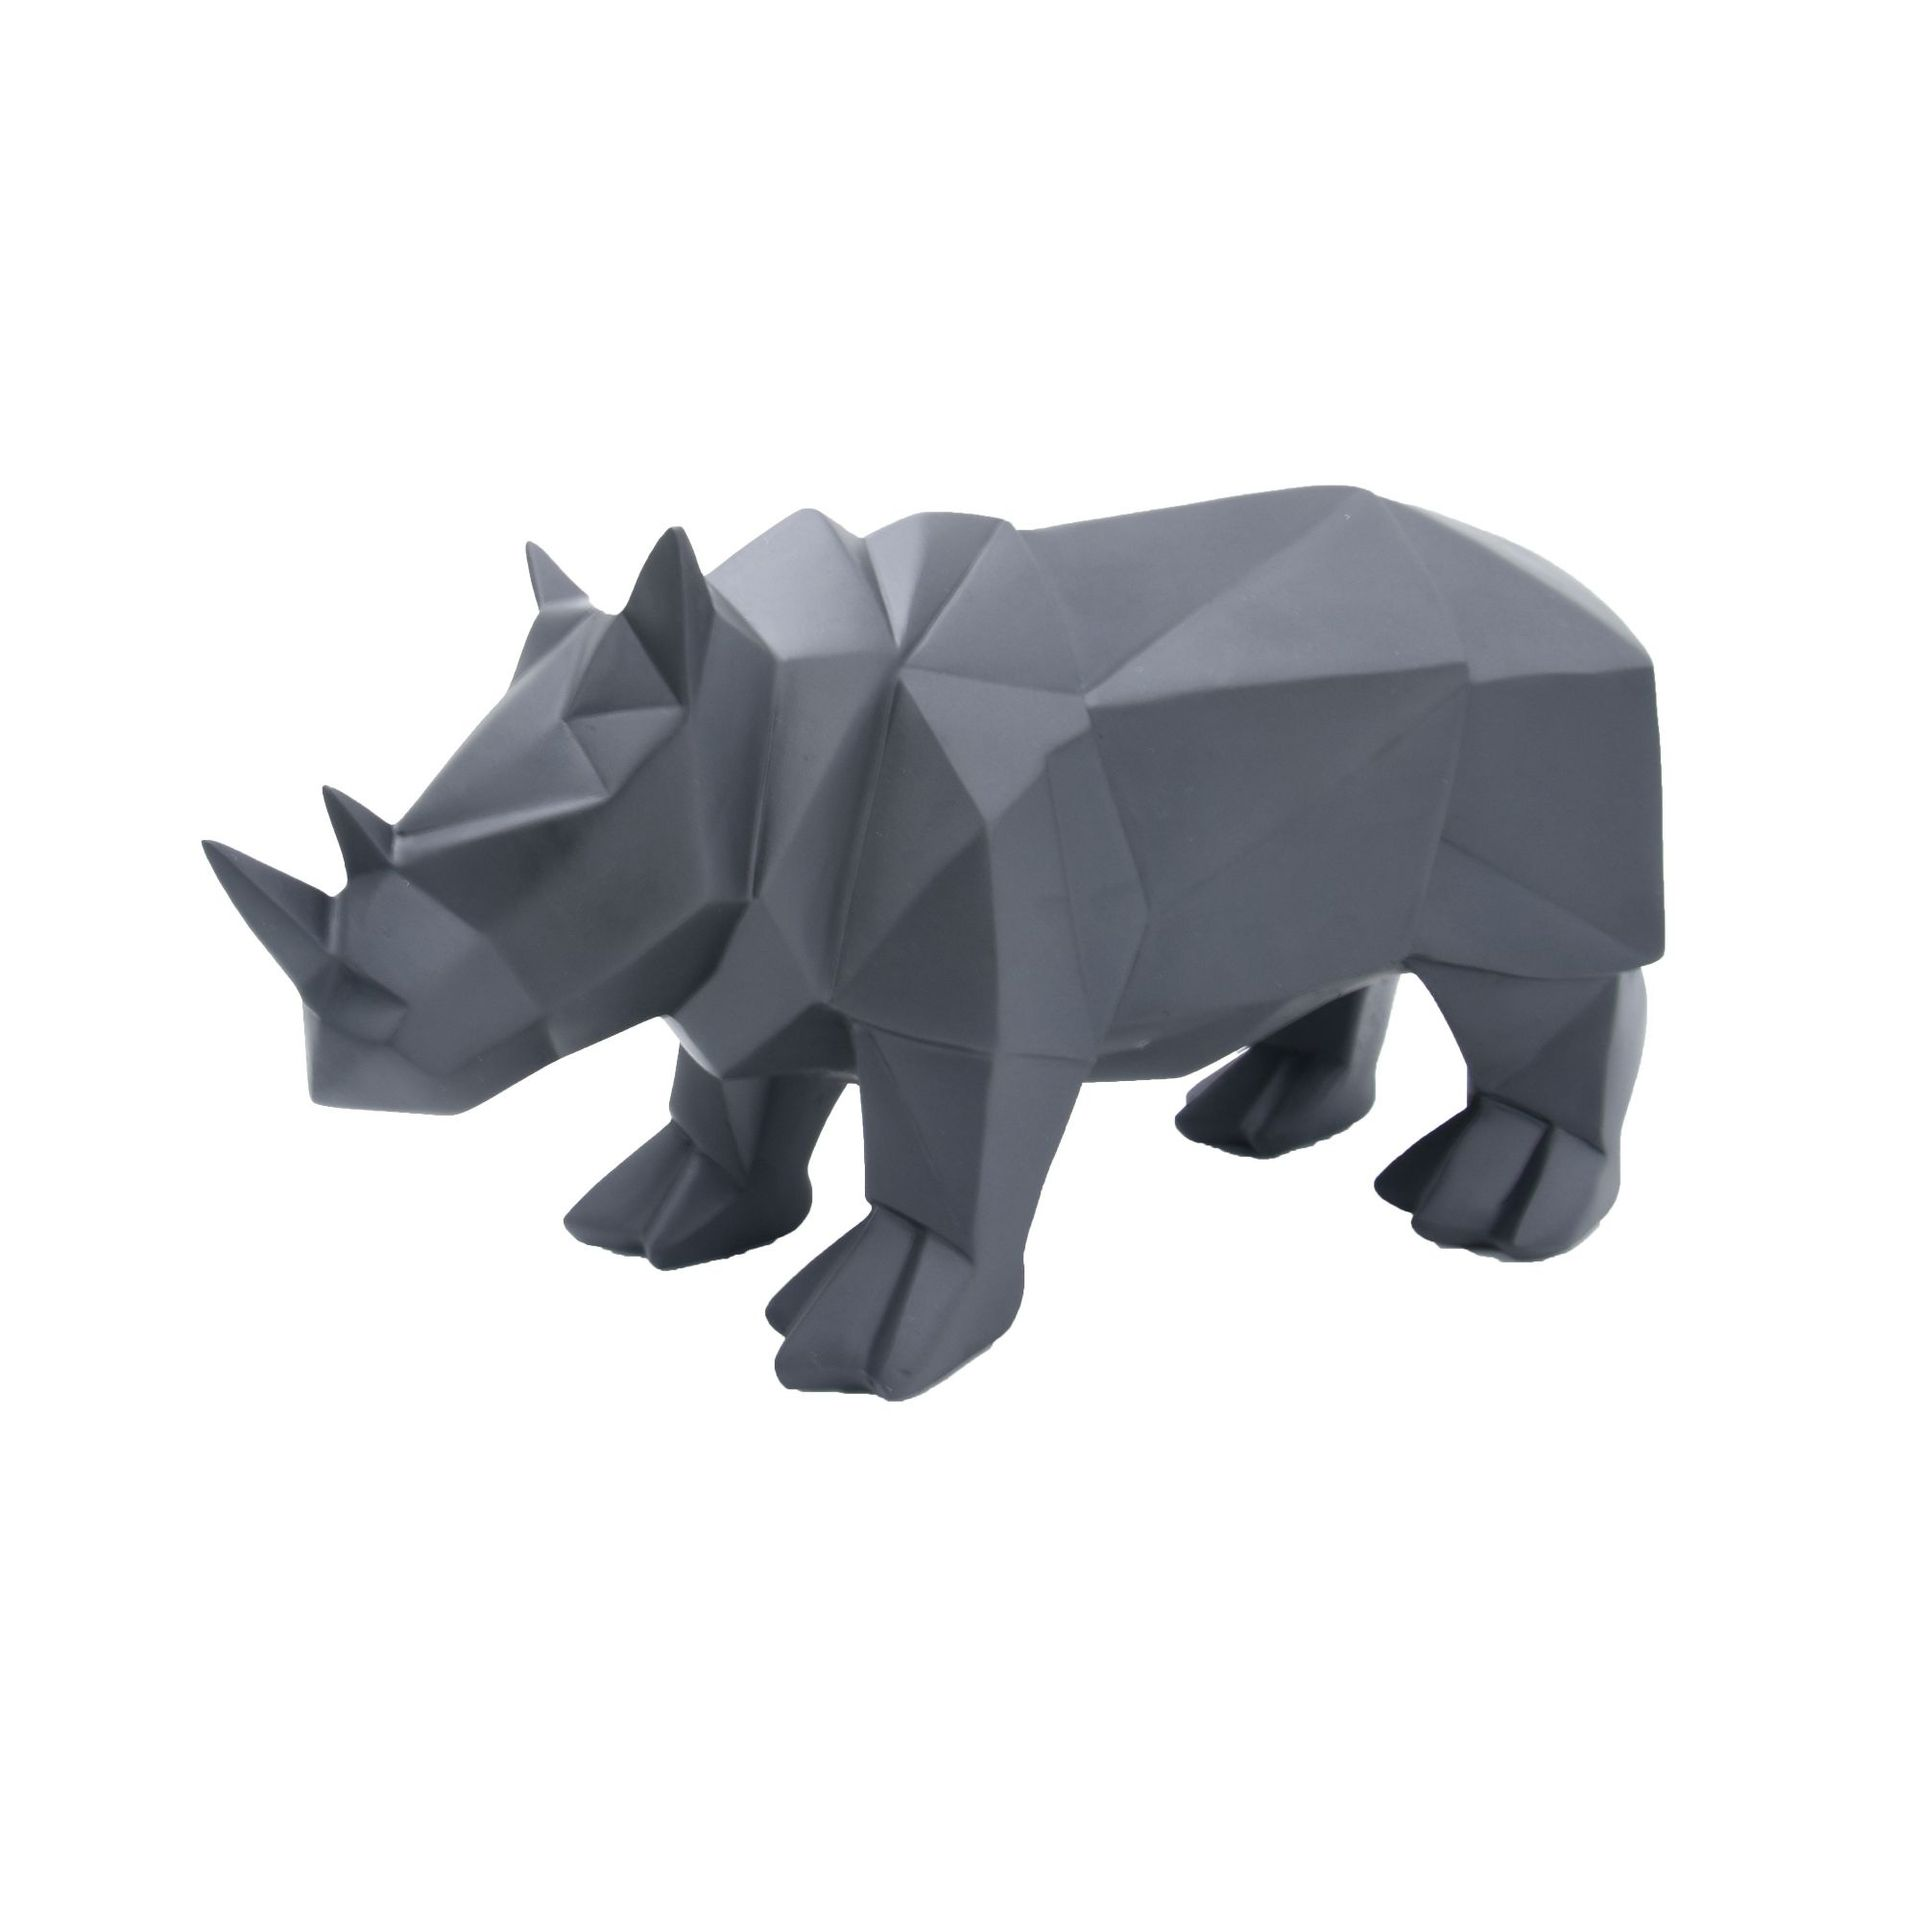 Rhinoceros Resin Statues For Decoration Abstract Geometric Resin Sculpture Animal Figurine Home Decoration Accessories Modern